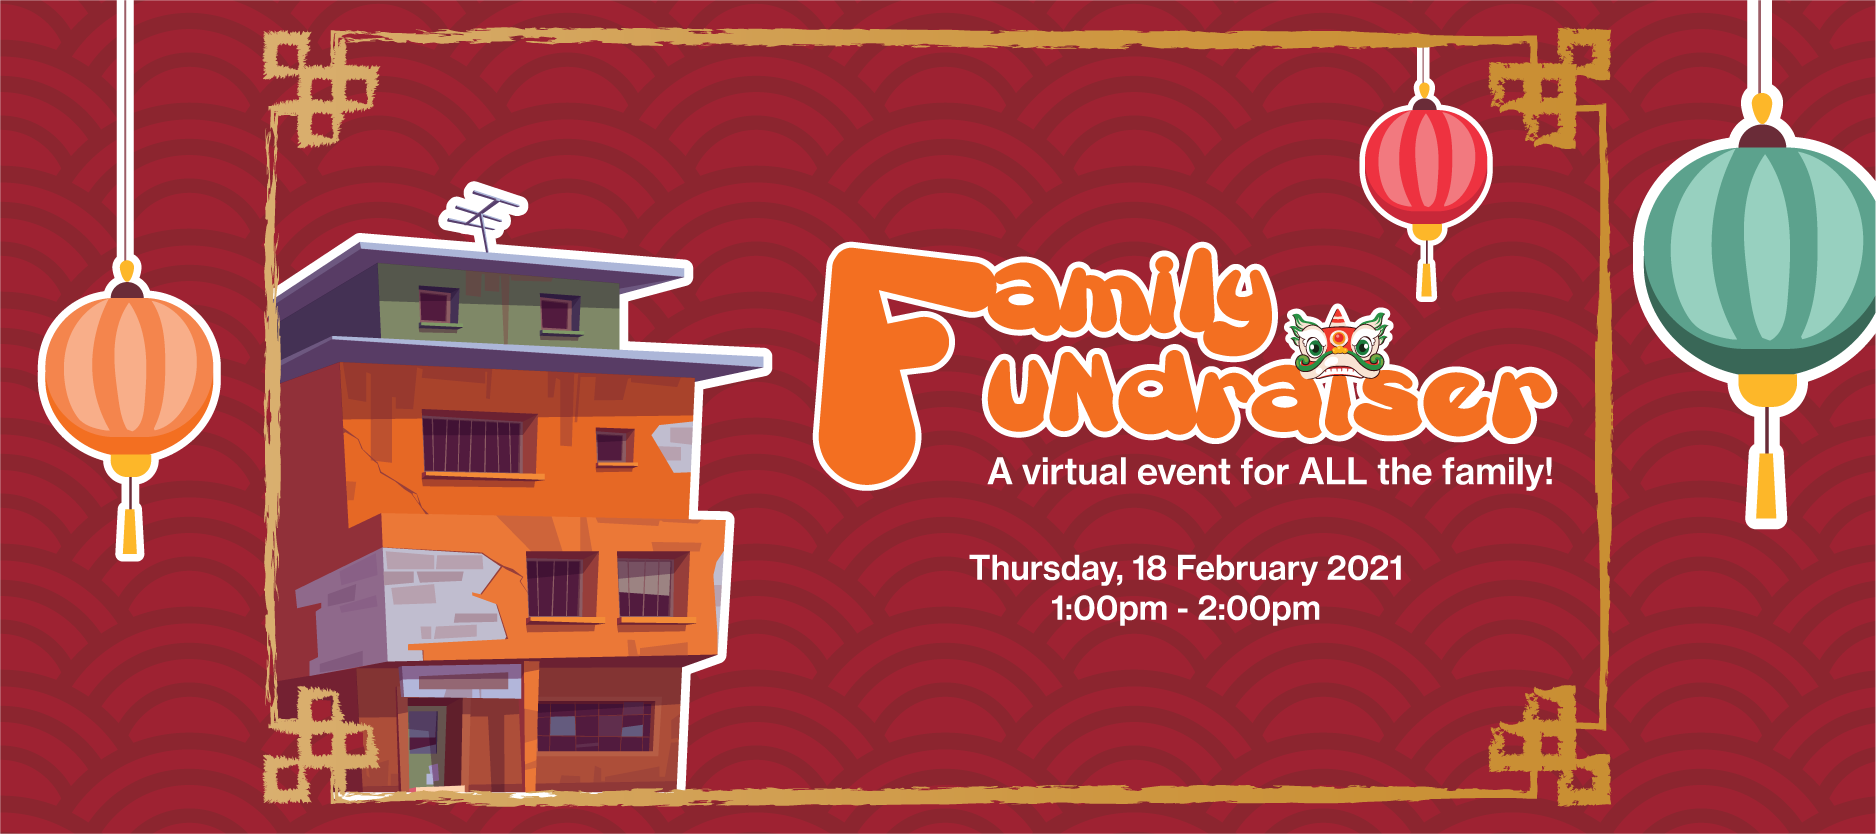 A virtual event for ALL the family!